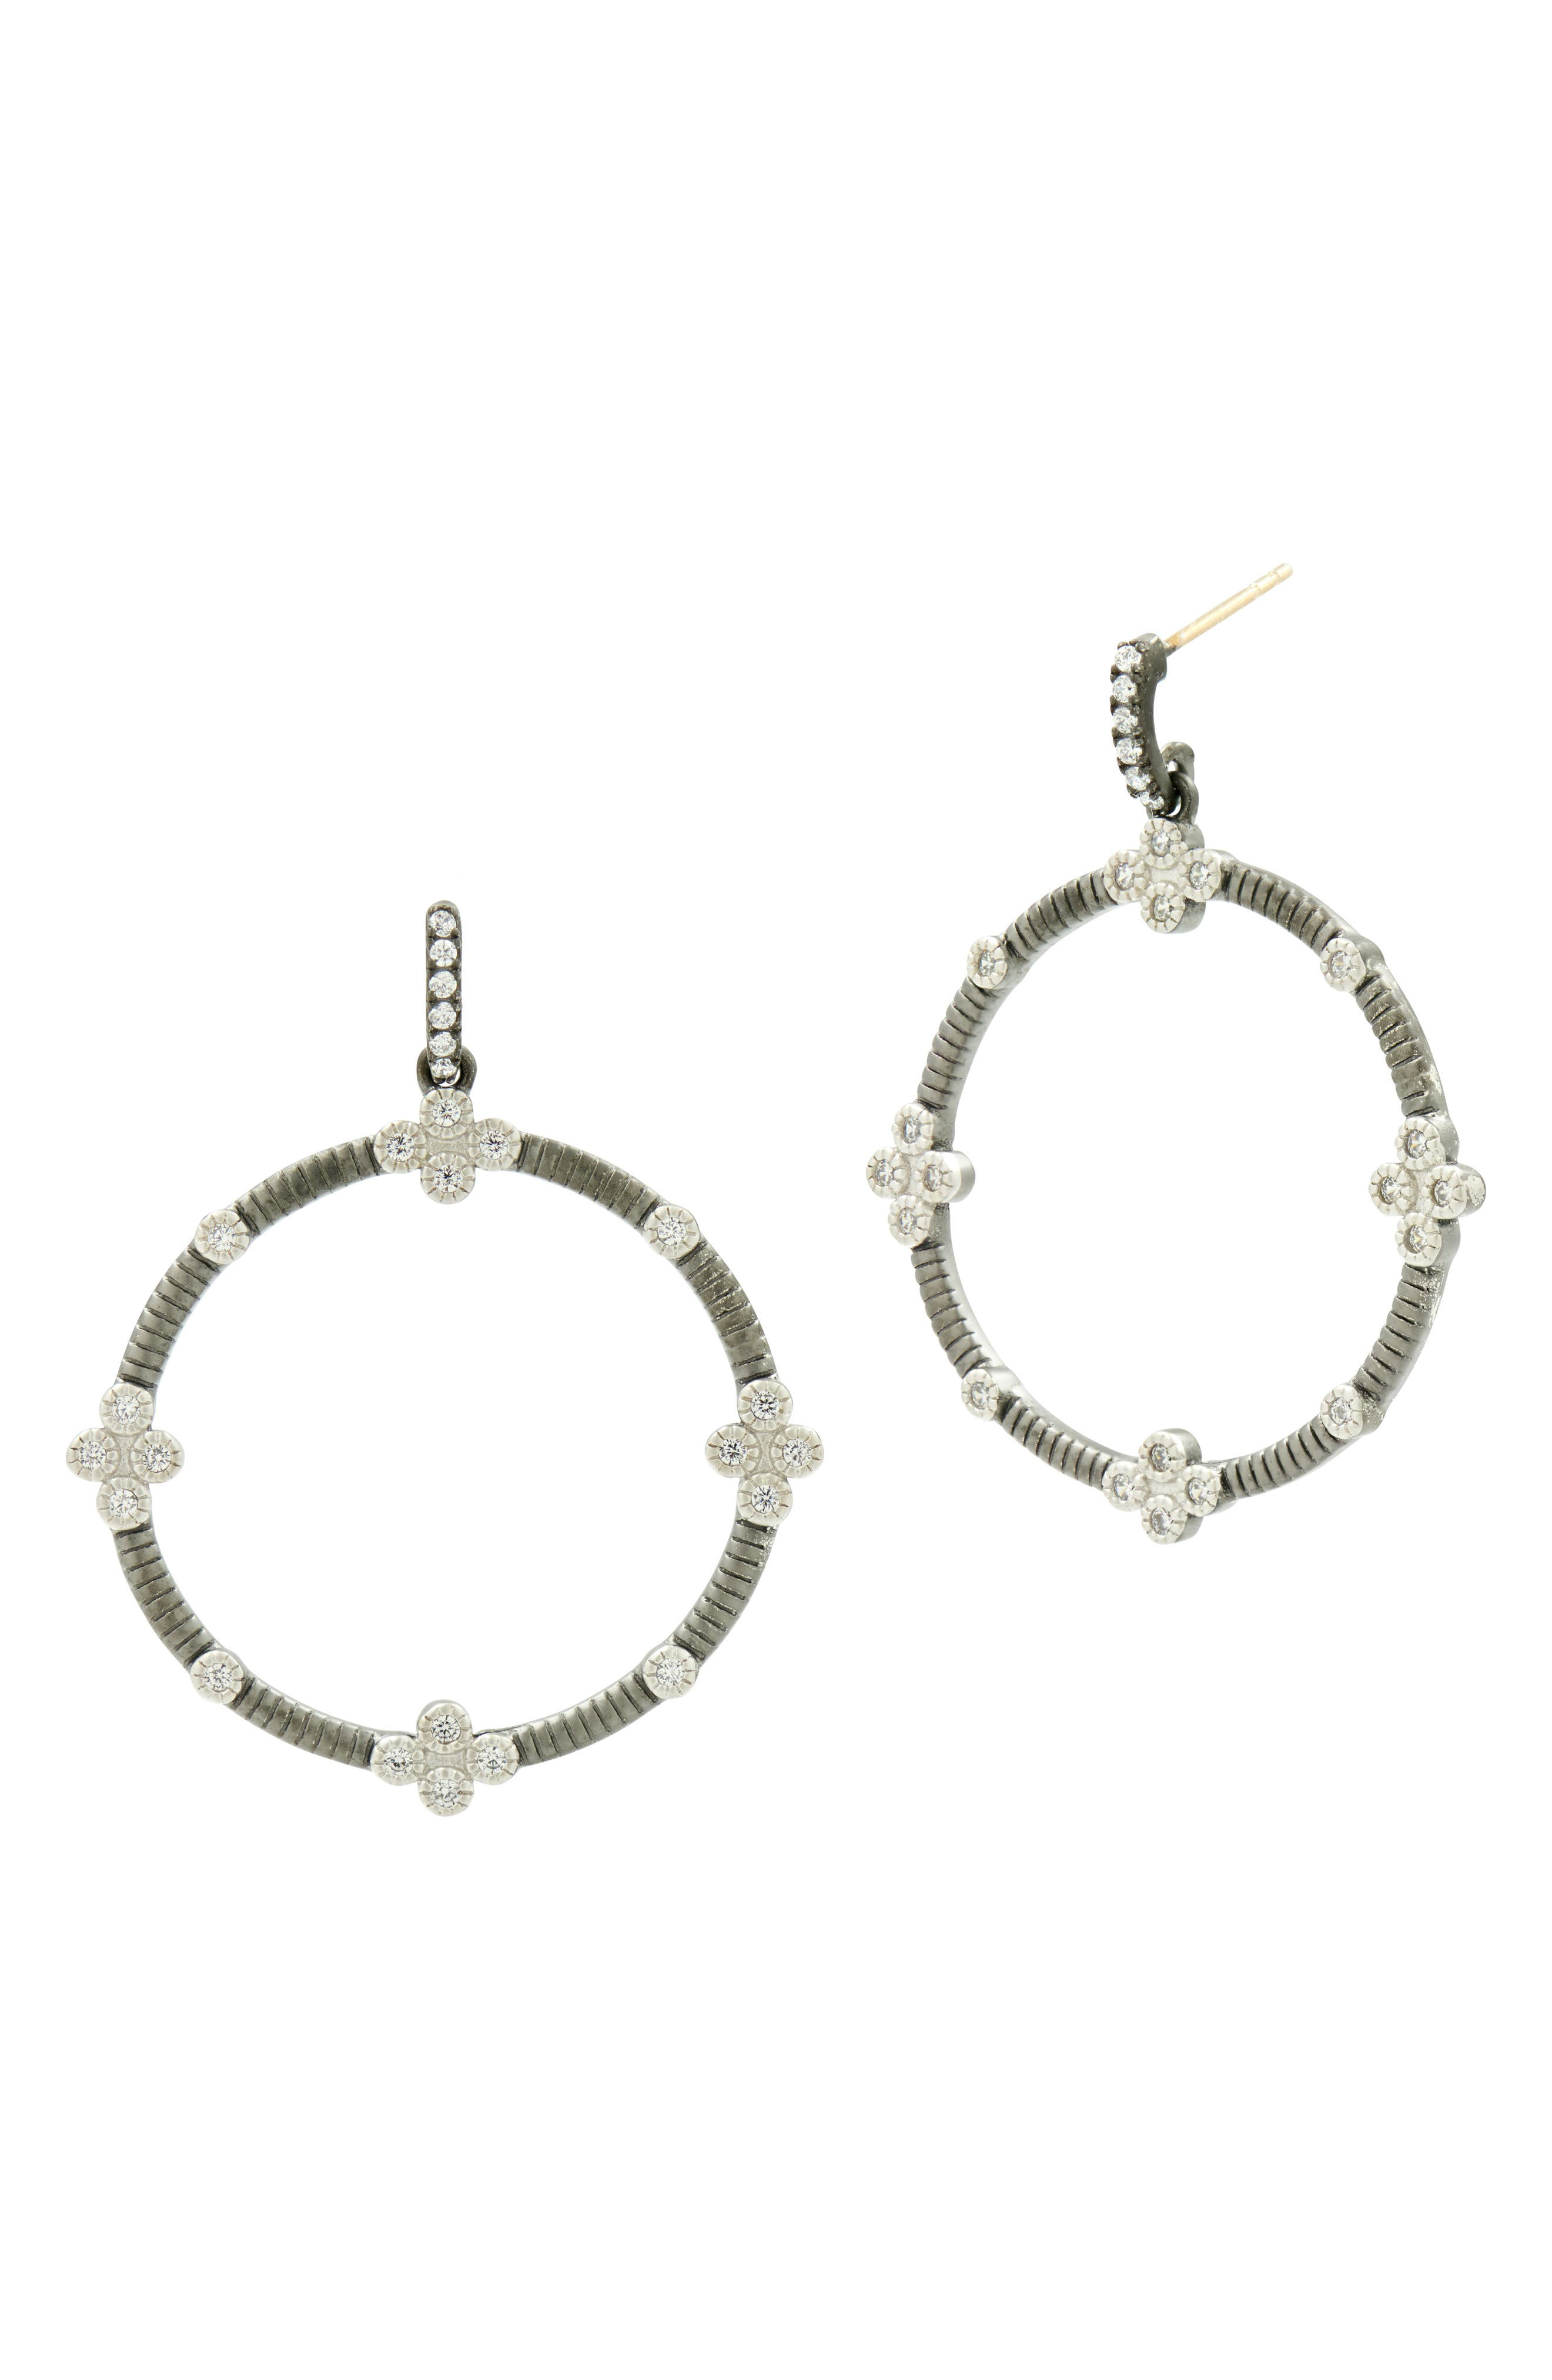 Four-Clover Point Frontal Hoop Earrings,                             Main thumbnail 1, color,                             Silver/ Black Rhodium